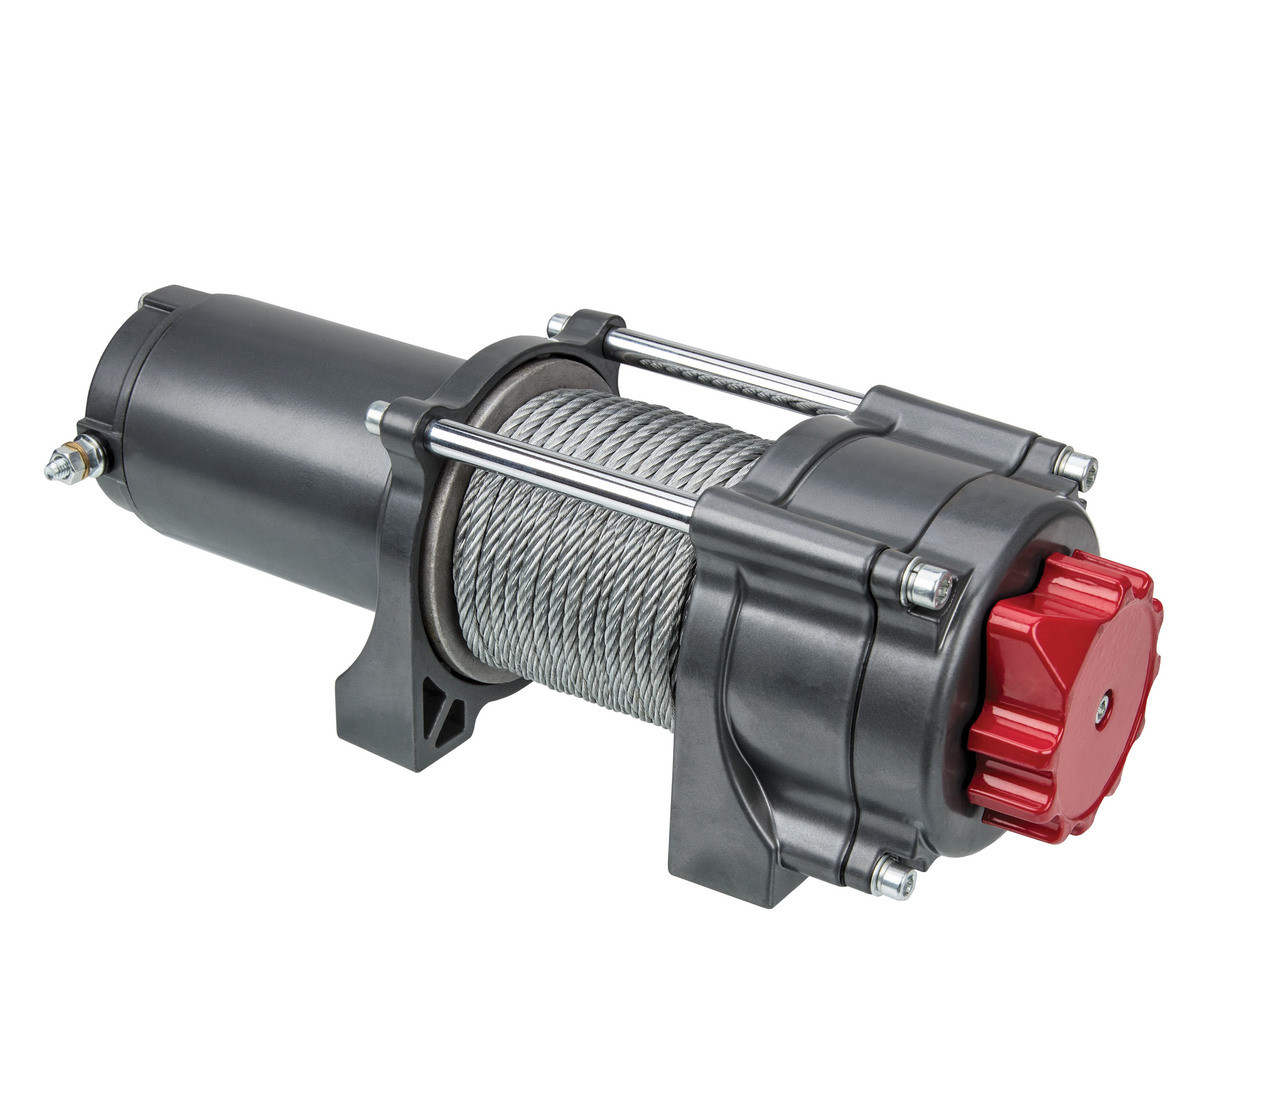 500632 --- BULLDOG XLT Electric ATV/Utility Winch, 4500 lb Capacity